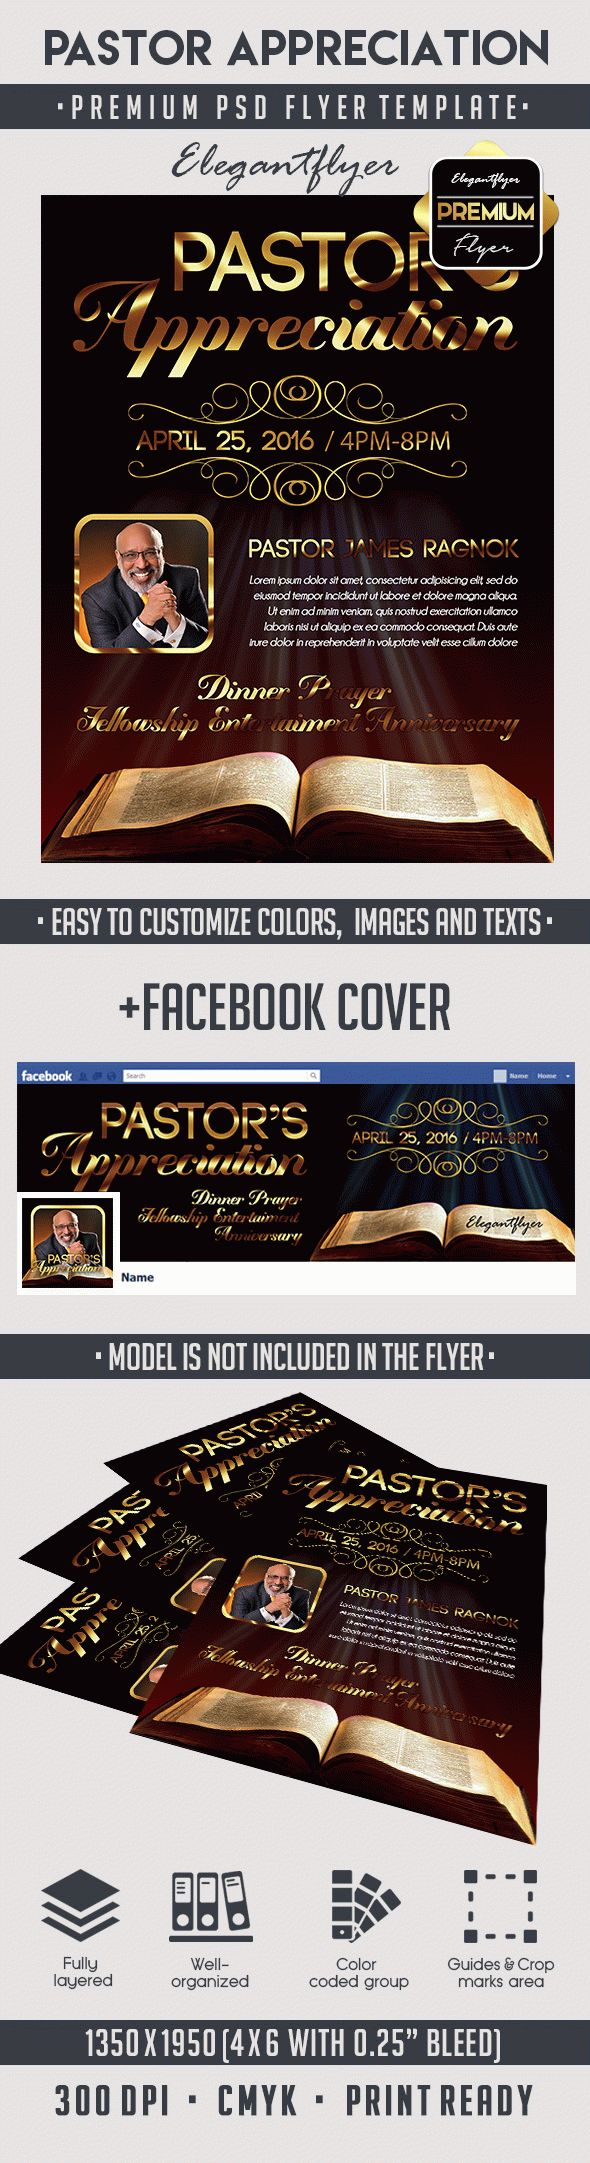 Pastor Appreciation – Premium Flyer PSD Template – By